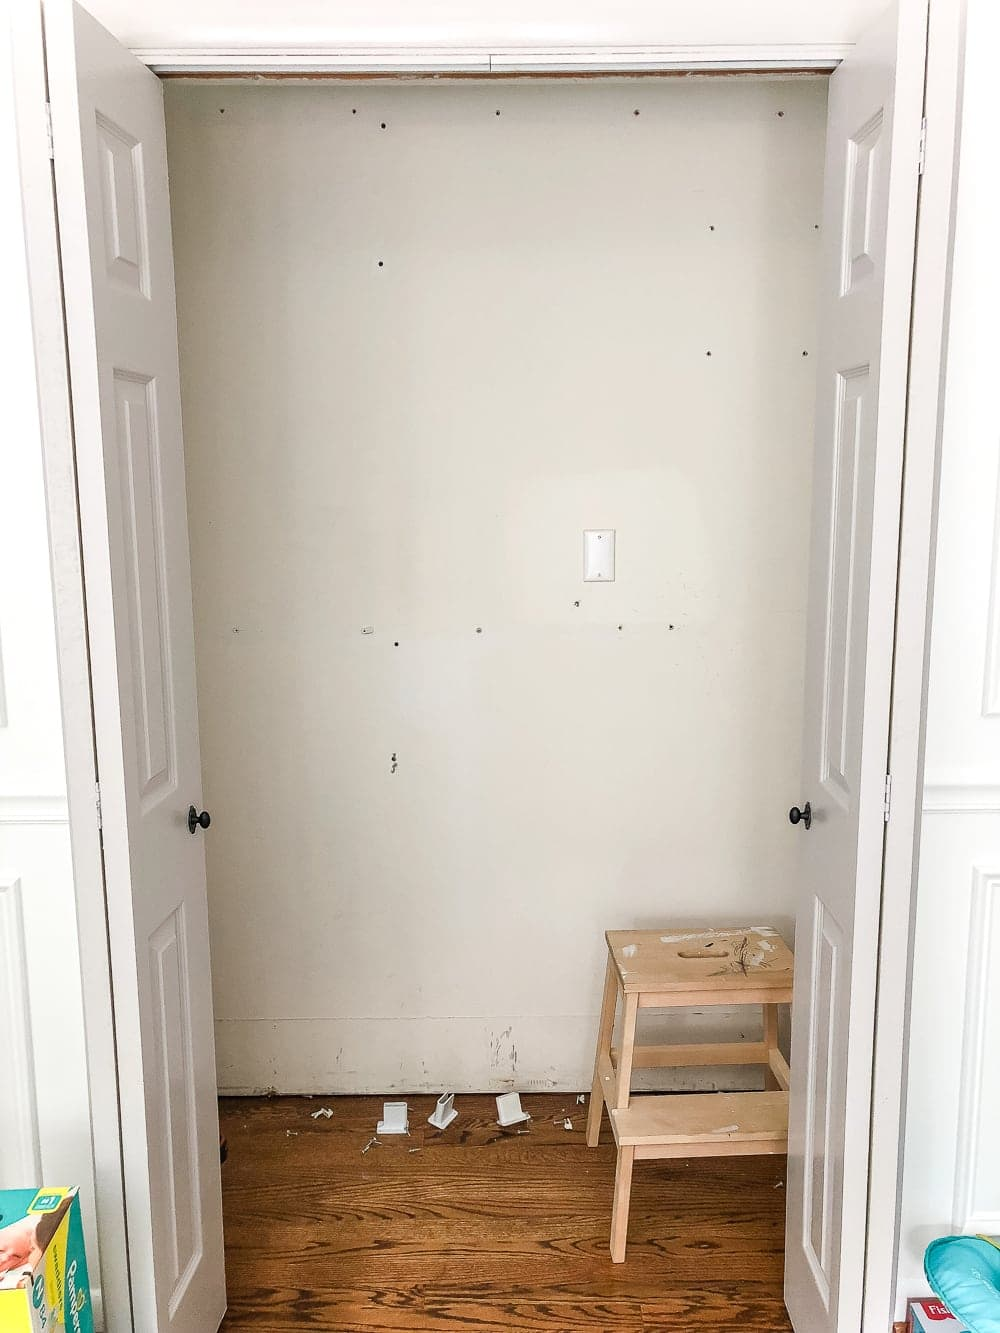 Nursery closet with wire shelving removed